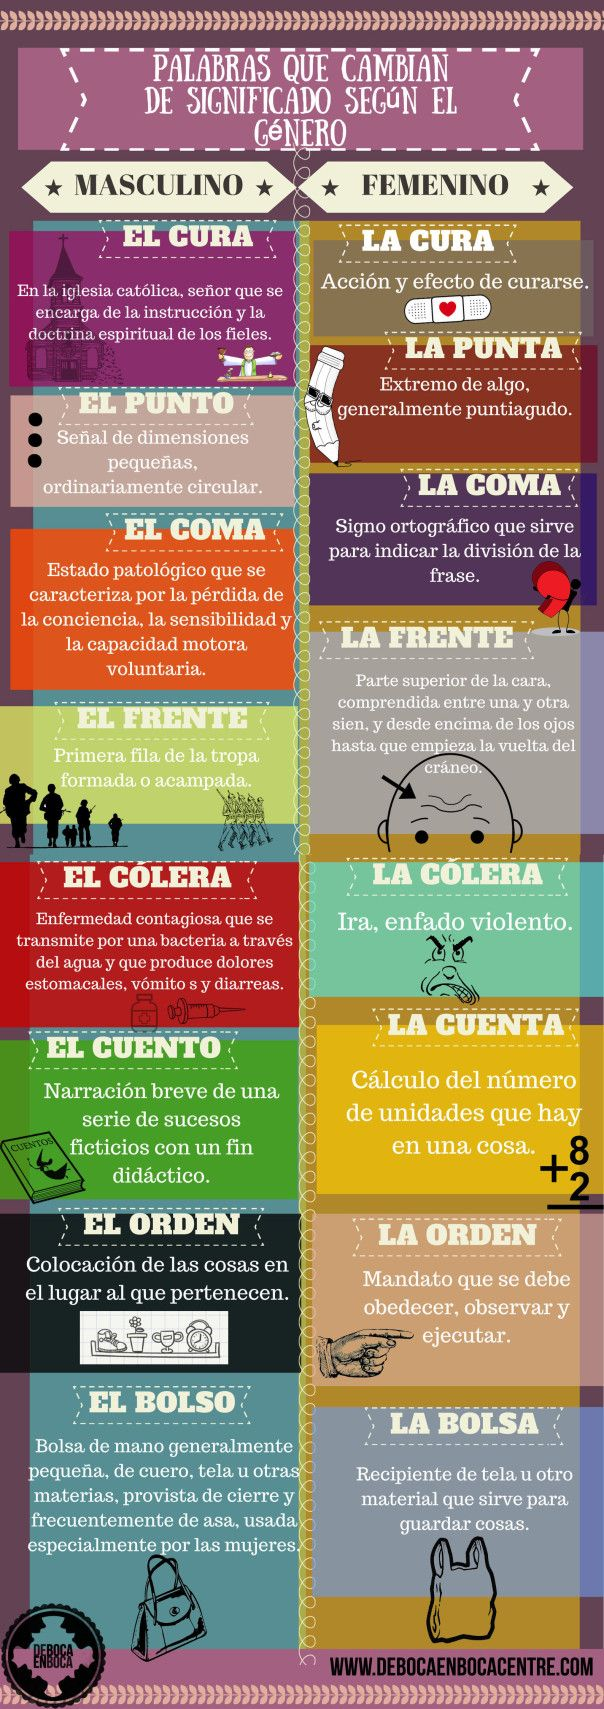 Palabras que cambian con el género Spanish vocabulary with different meaning depending on gender #Spanishvocabulary #languages #expressions #spanish #idioms #learning If you find this info graphic useful, please share, like or pin it for your friends.